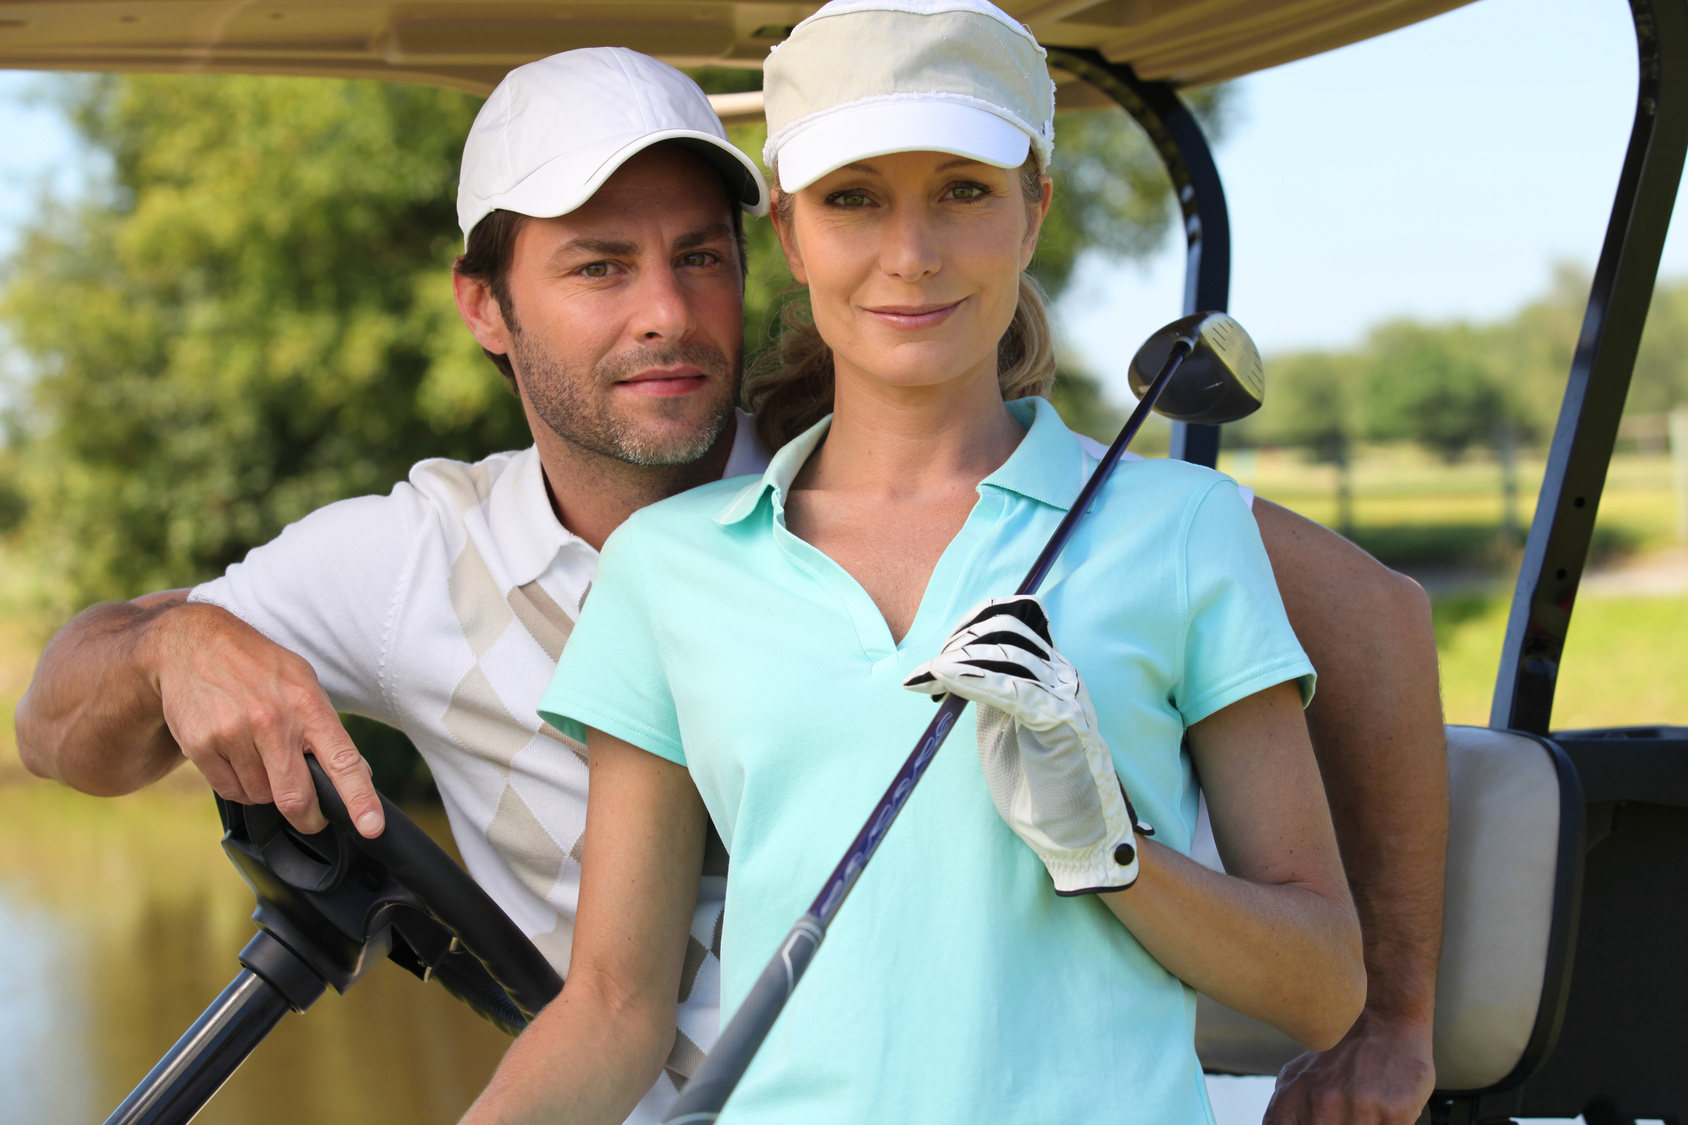 Golfers Guide to Choose the Best Golfing Shoes